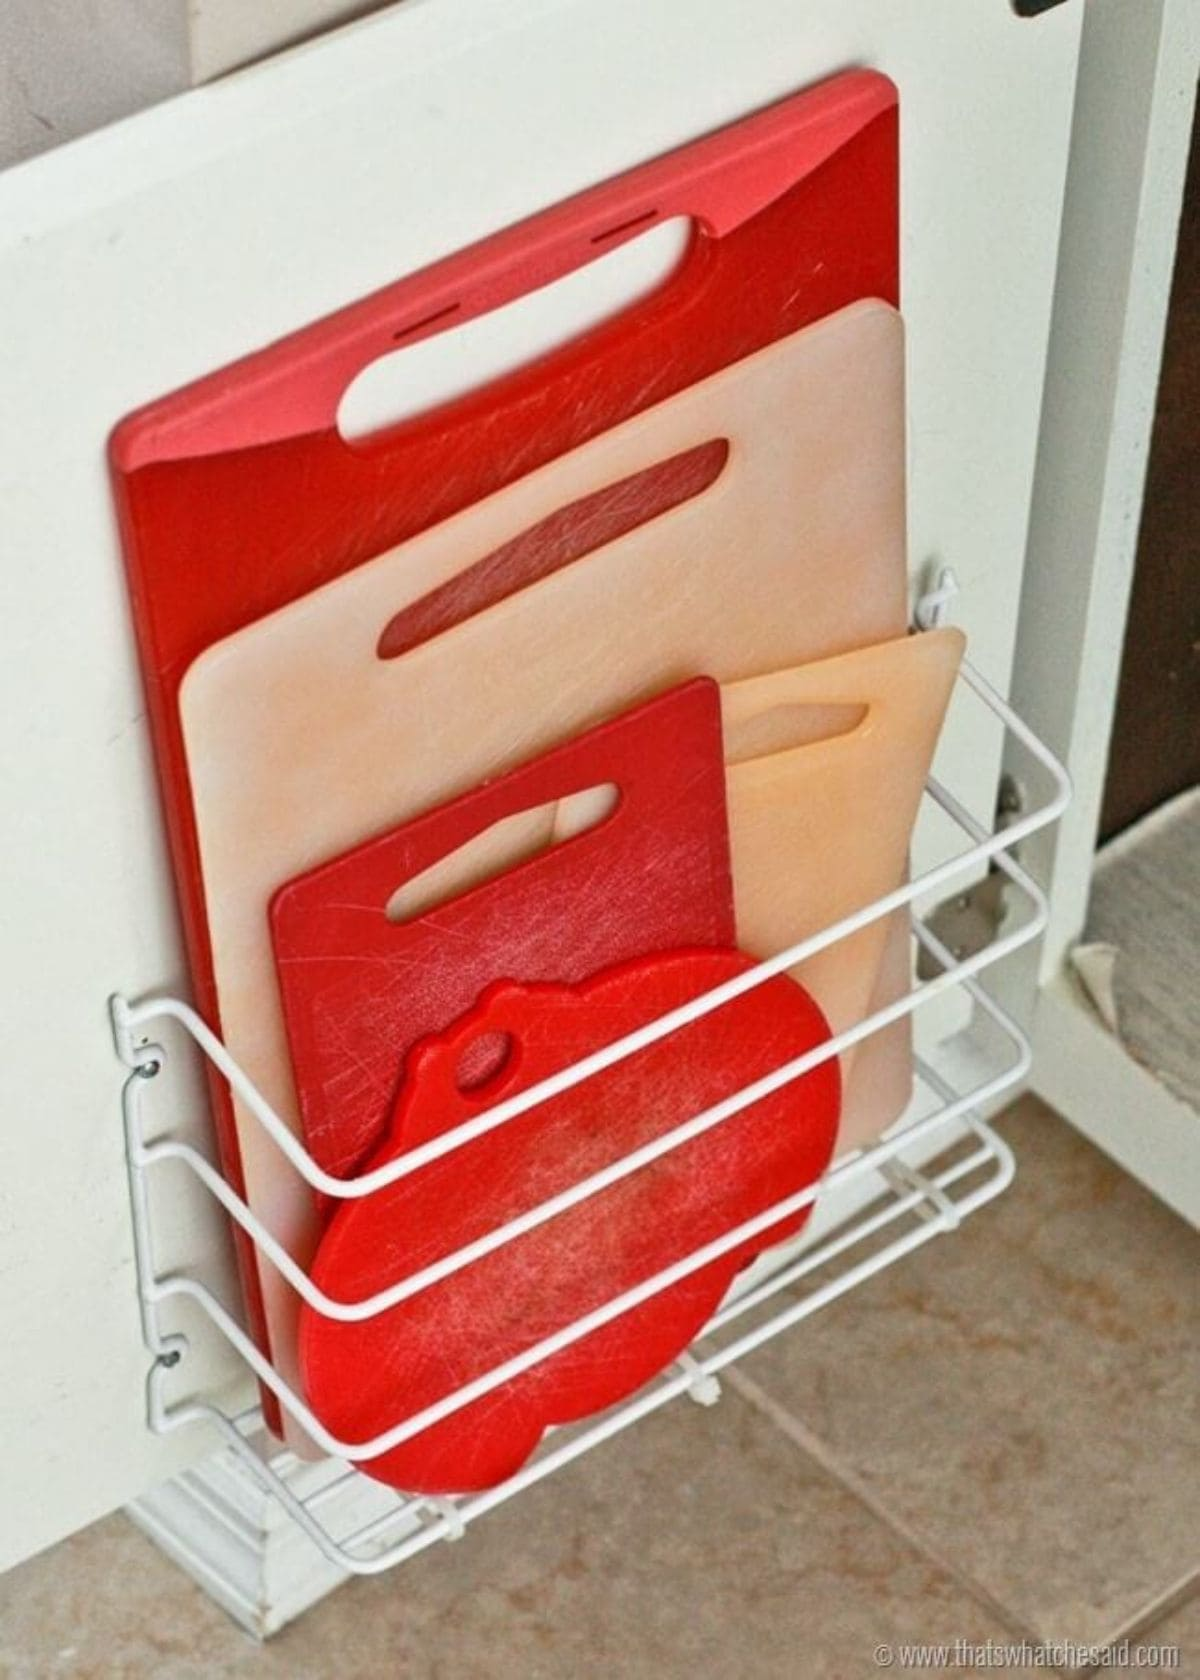 Inside the door of a cupboard a wire magazine rack has been fitted. Inside are red and white chopping boards